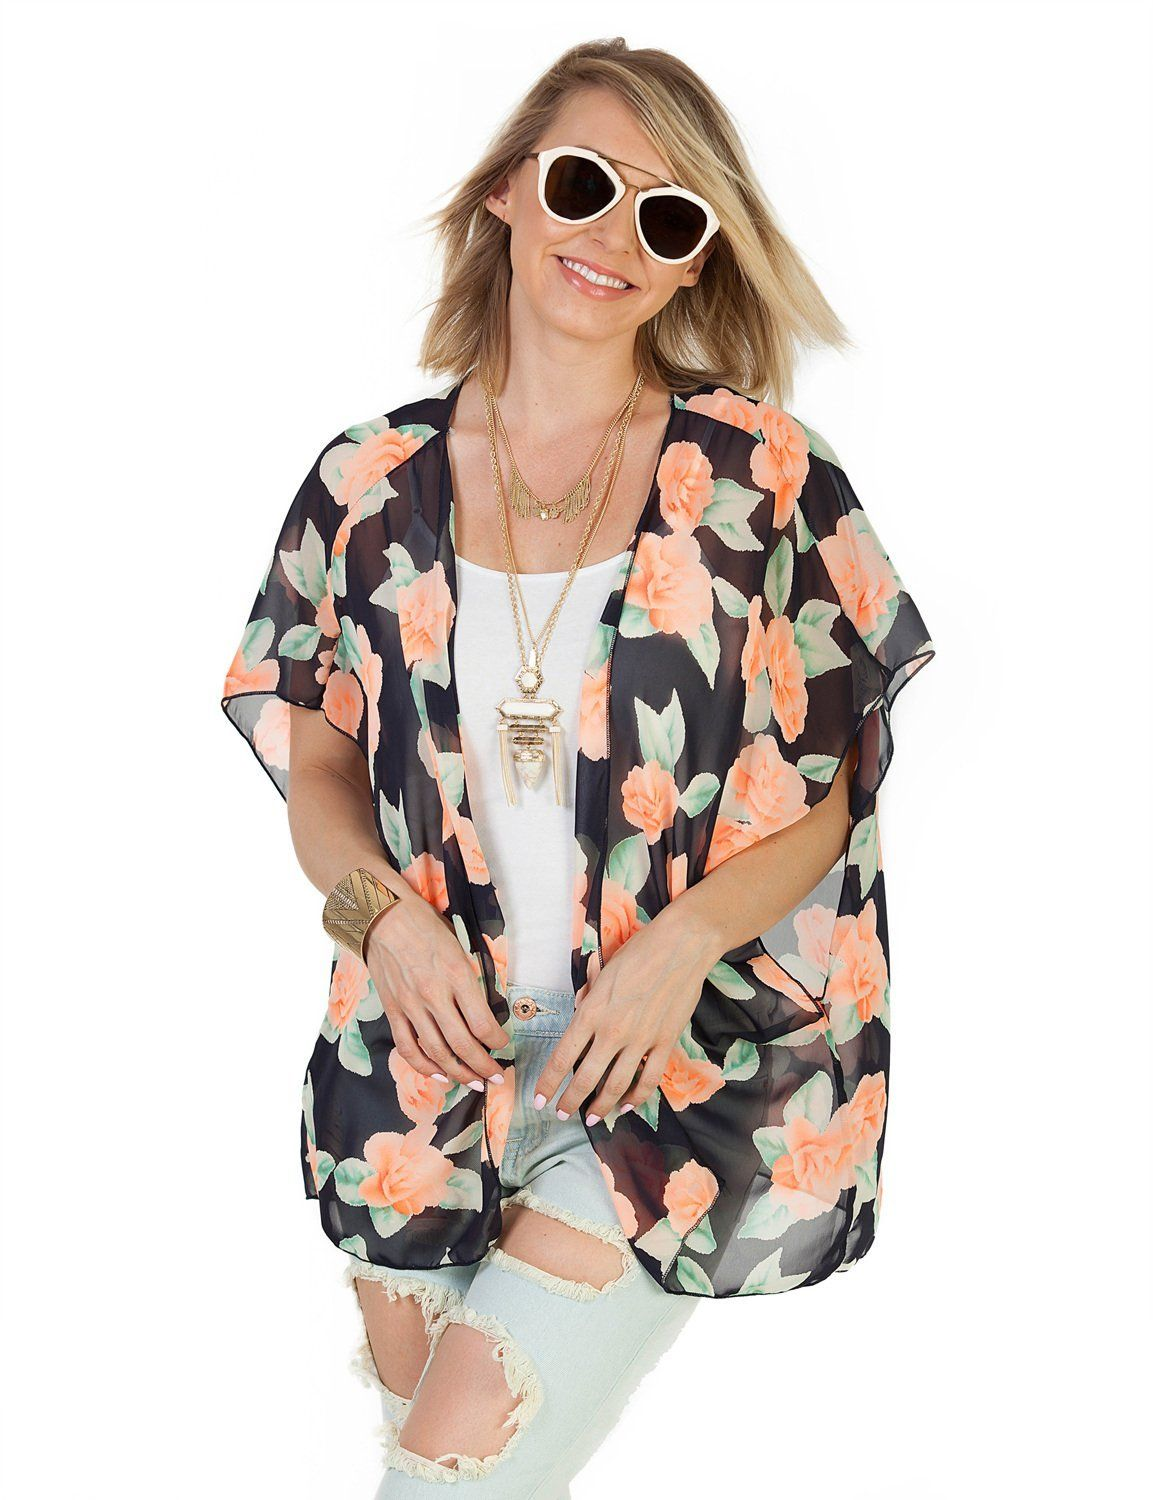 BUY - Azkara Women's Light Loose Short Sleeve Printed Kimono ...